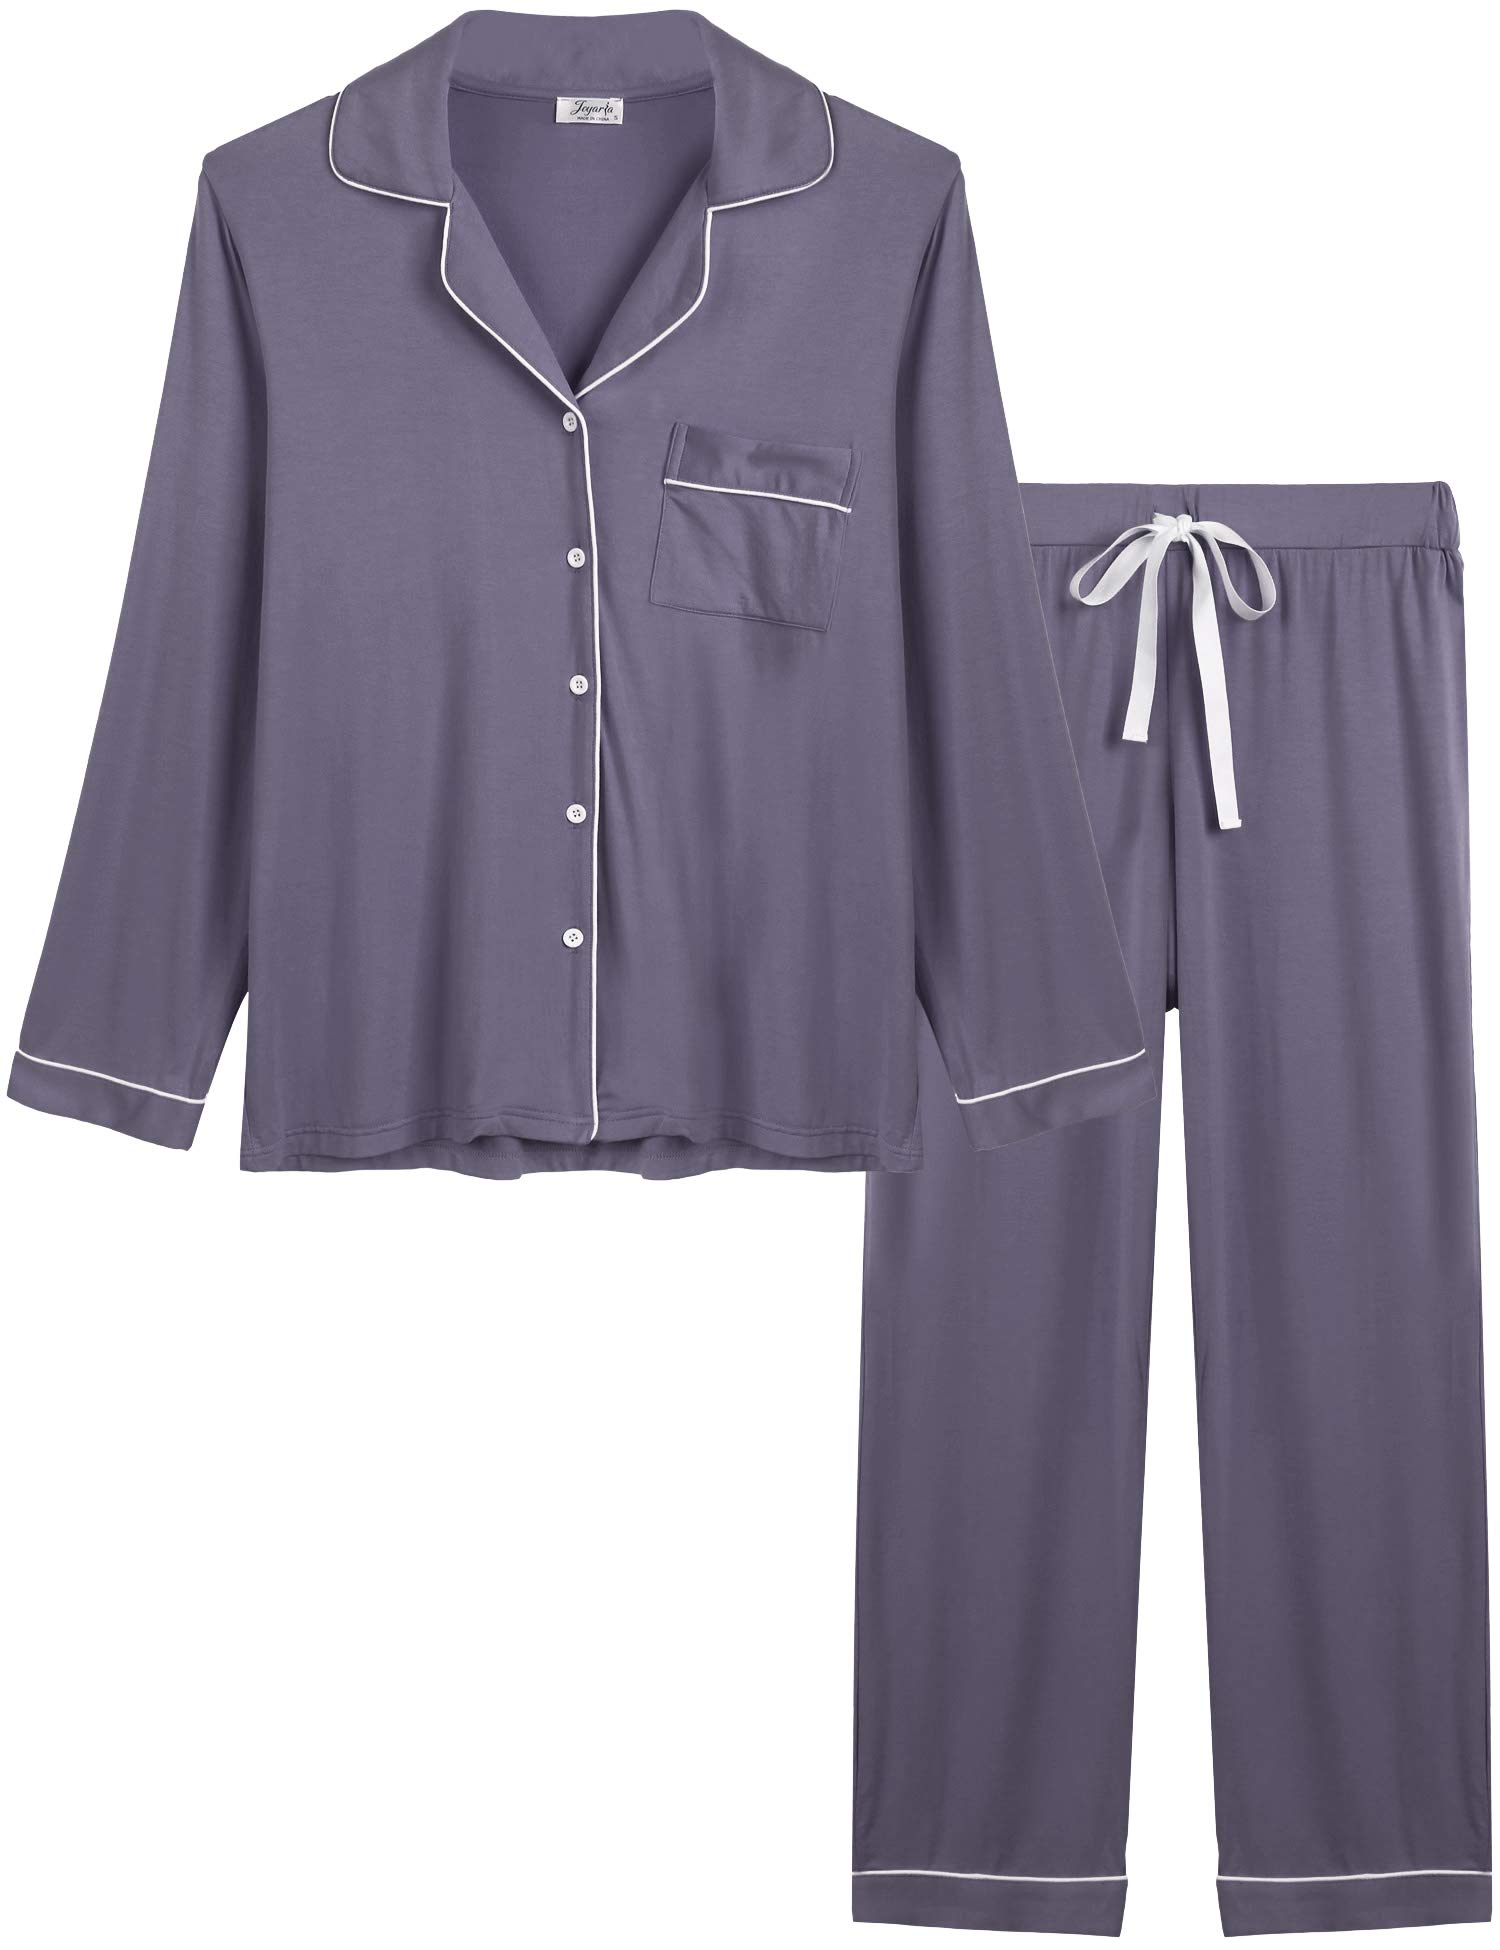 Joyaria Womens Soft Bamboo Pajama Sets Button Down Long Sleeve Pj Pants Set  Sleepwear product image cb785af79